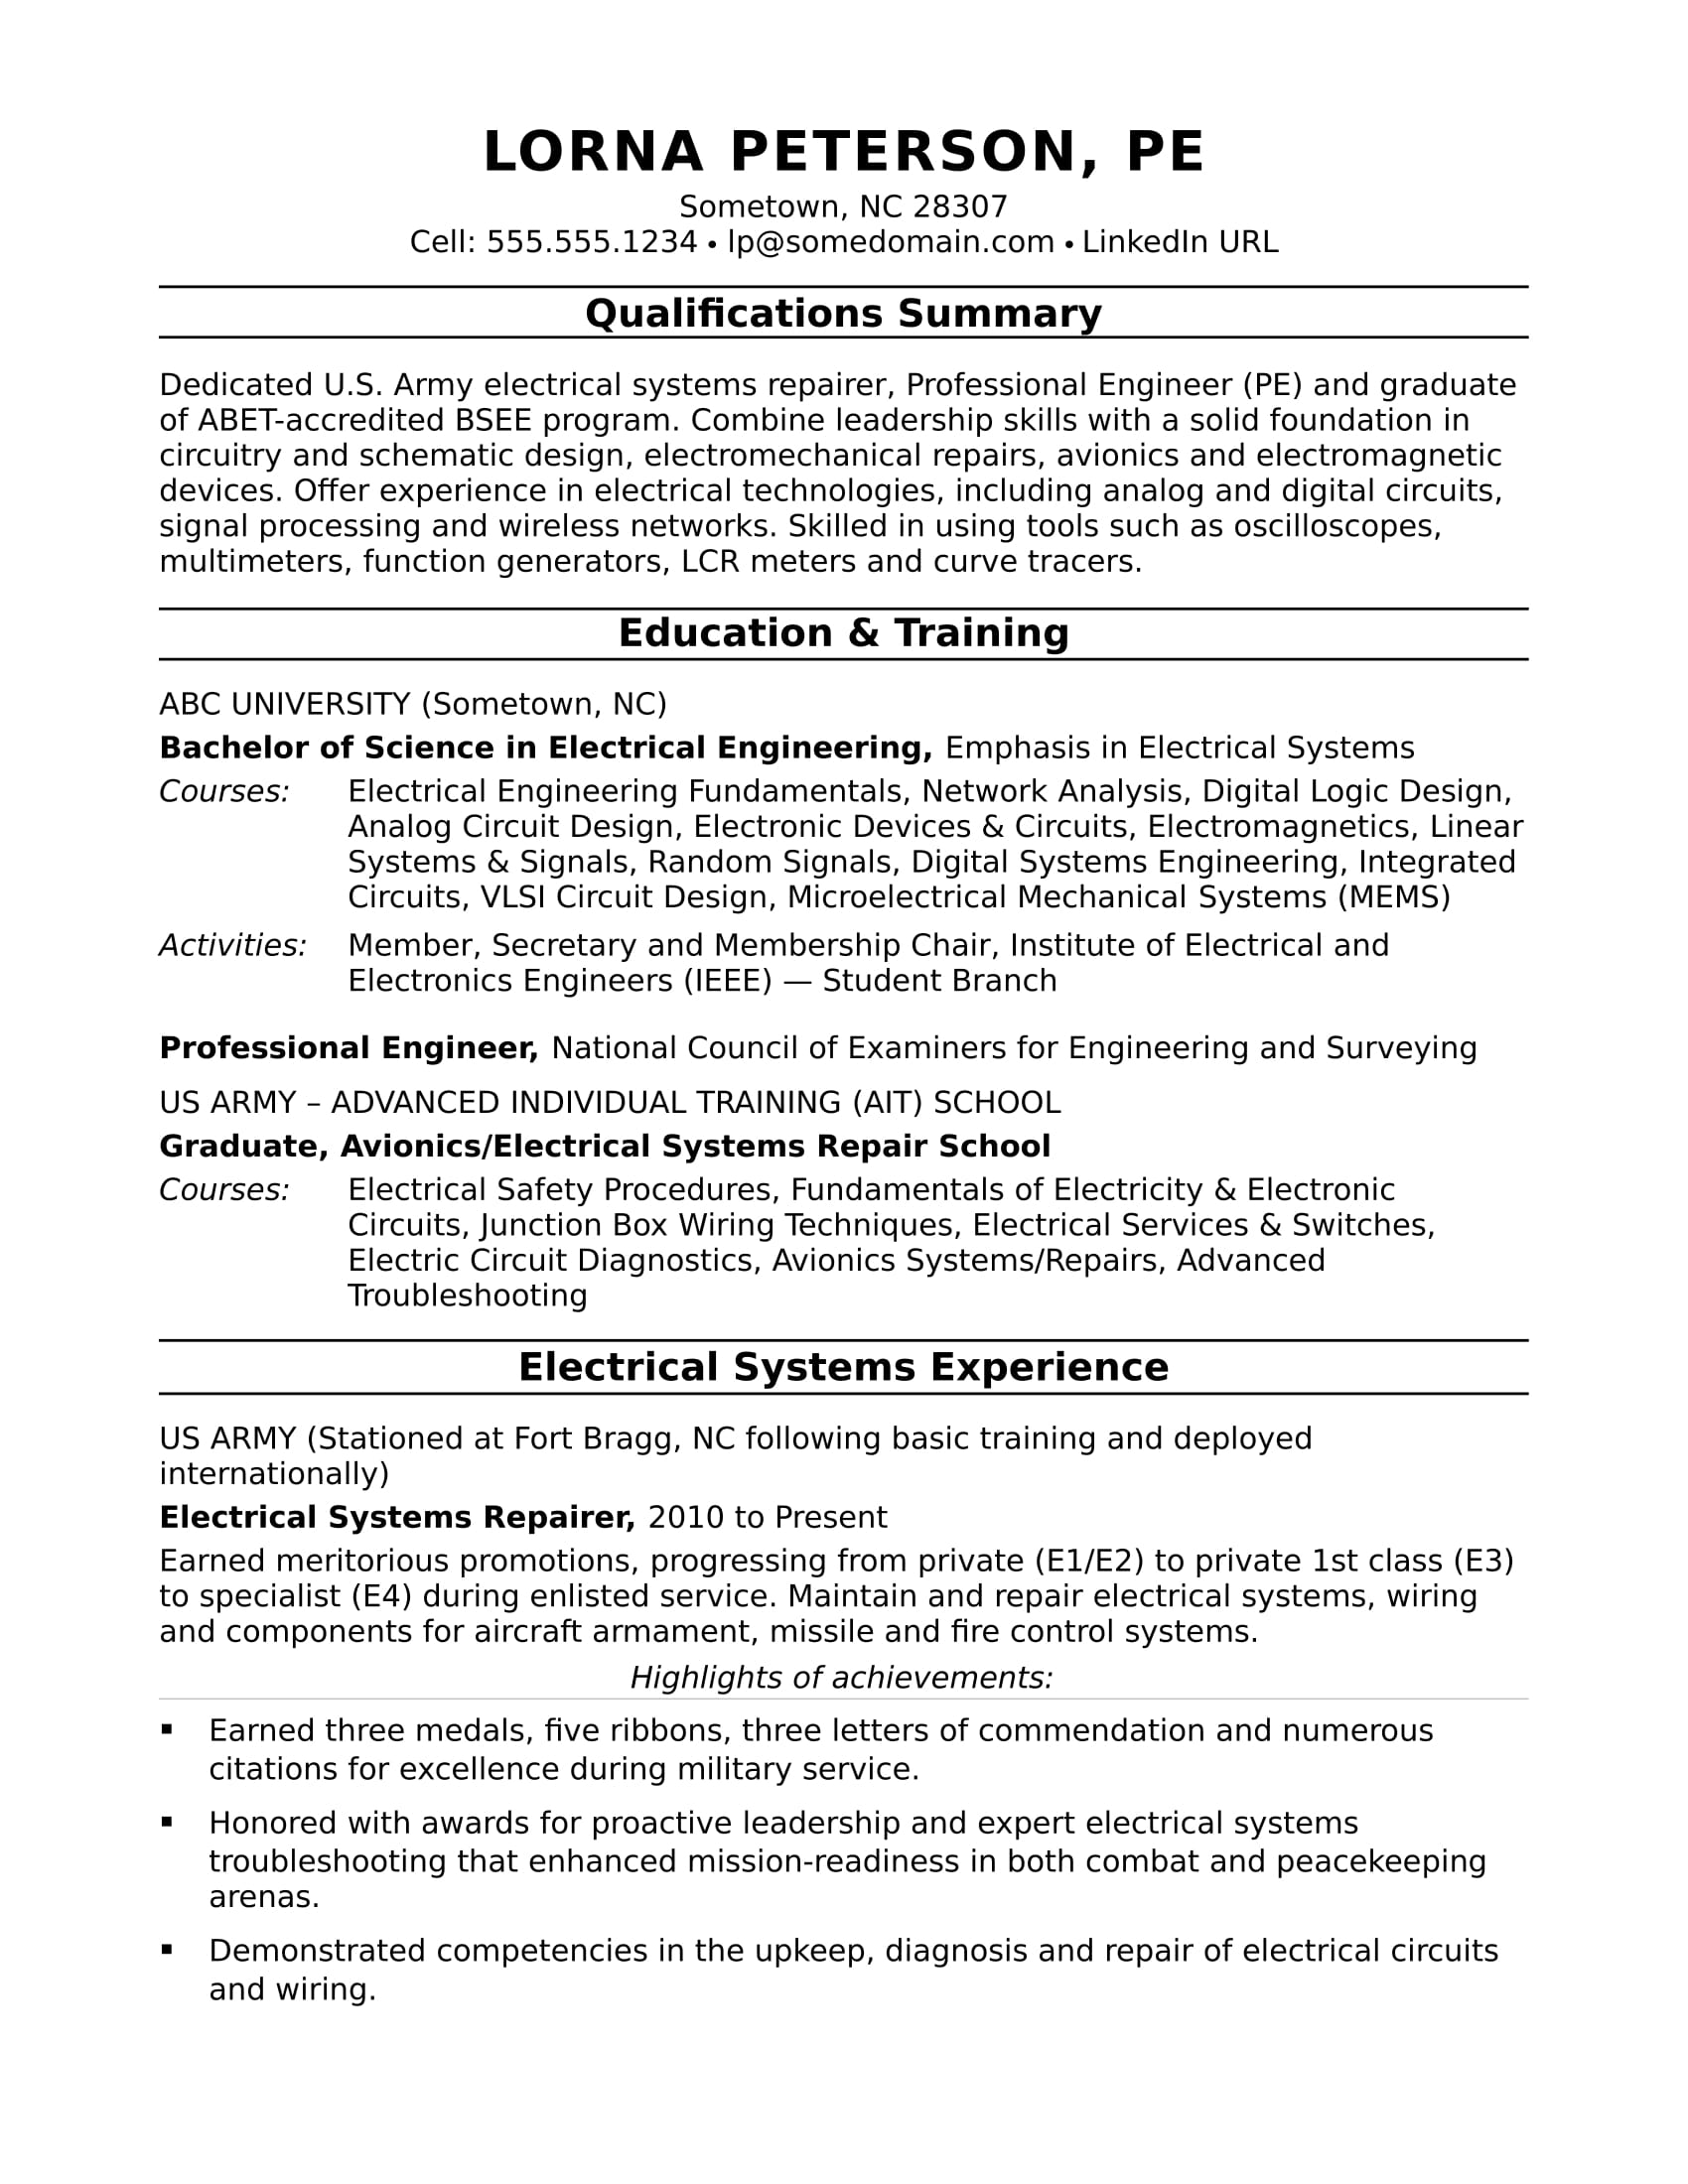 Sample Resume For Graduate School Application.Sample Resume For A Midlevel Electrical Engineer Monster Com